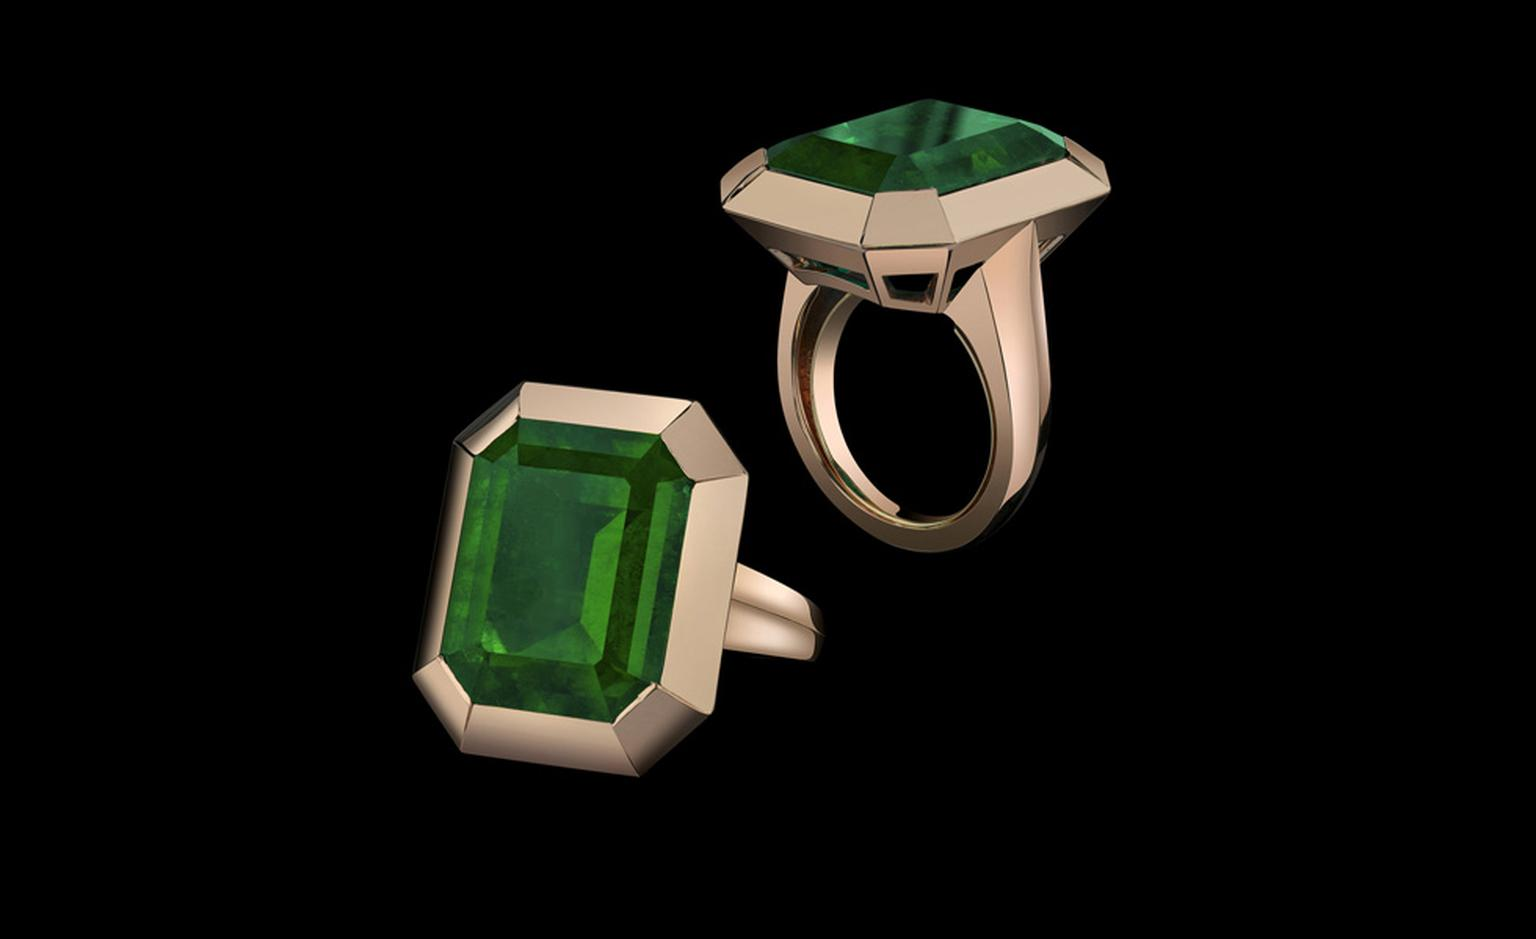 Two views of the emerald tablet ring from the Style of Angelina collection to go on sale later this year. Proceeds will benefit Jolie's charity The Education Partnership for Children of Conflict.